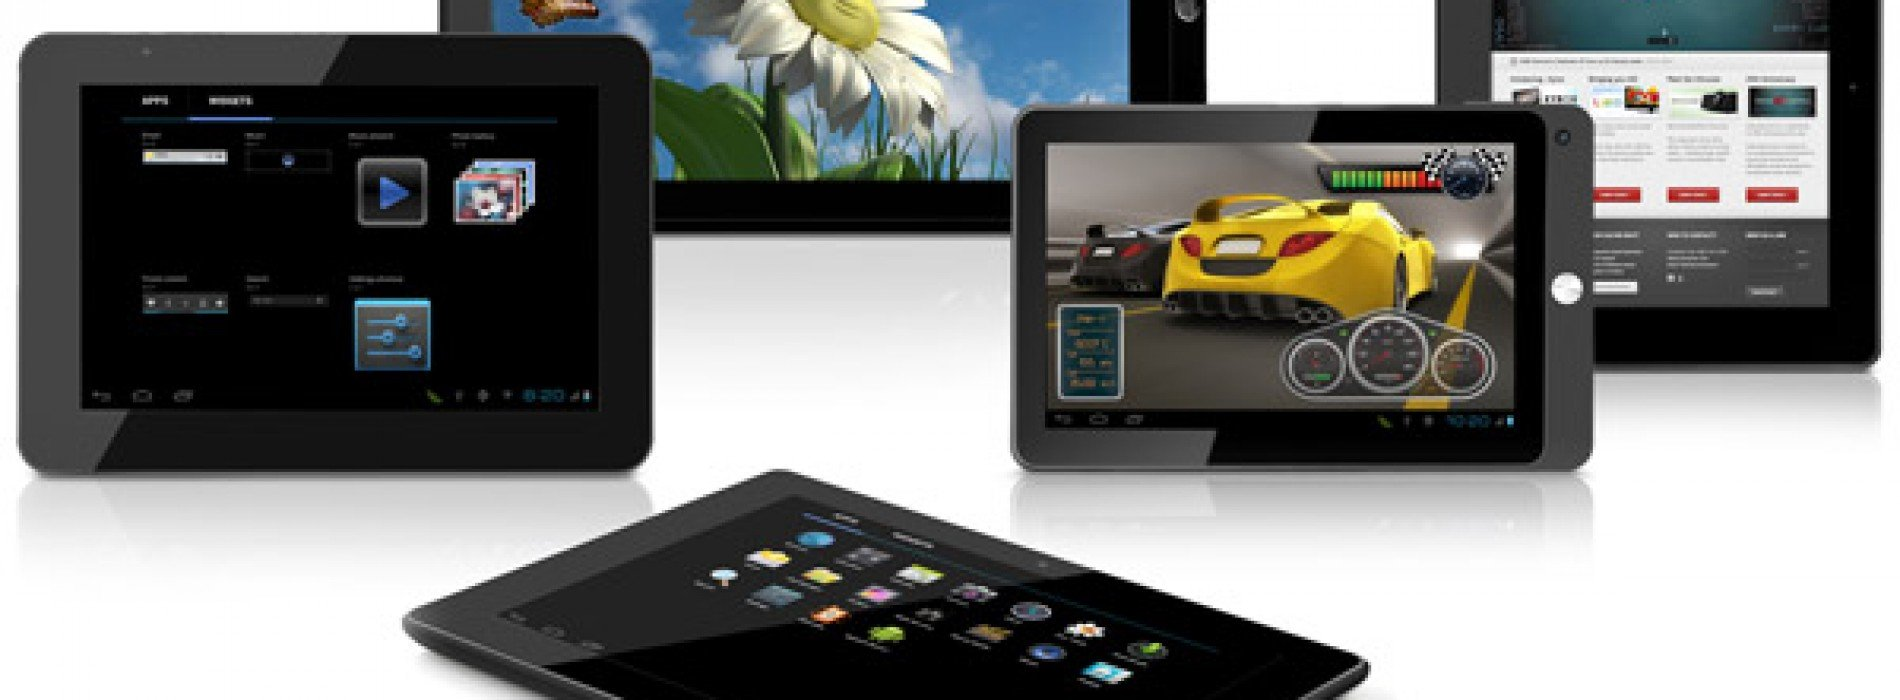 Coby's budget-friendly ICS tablets now shipping